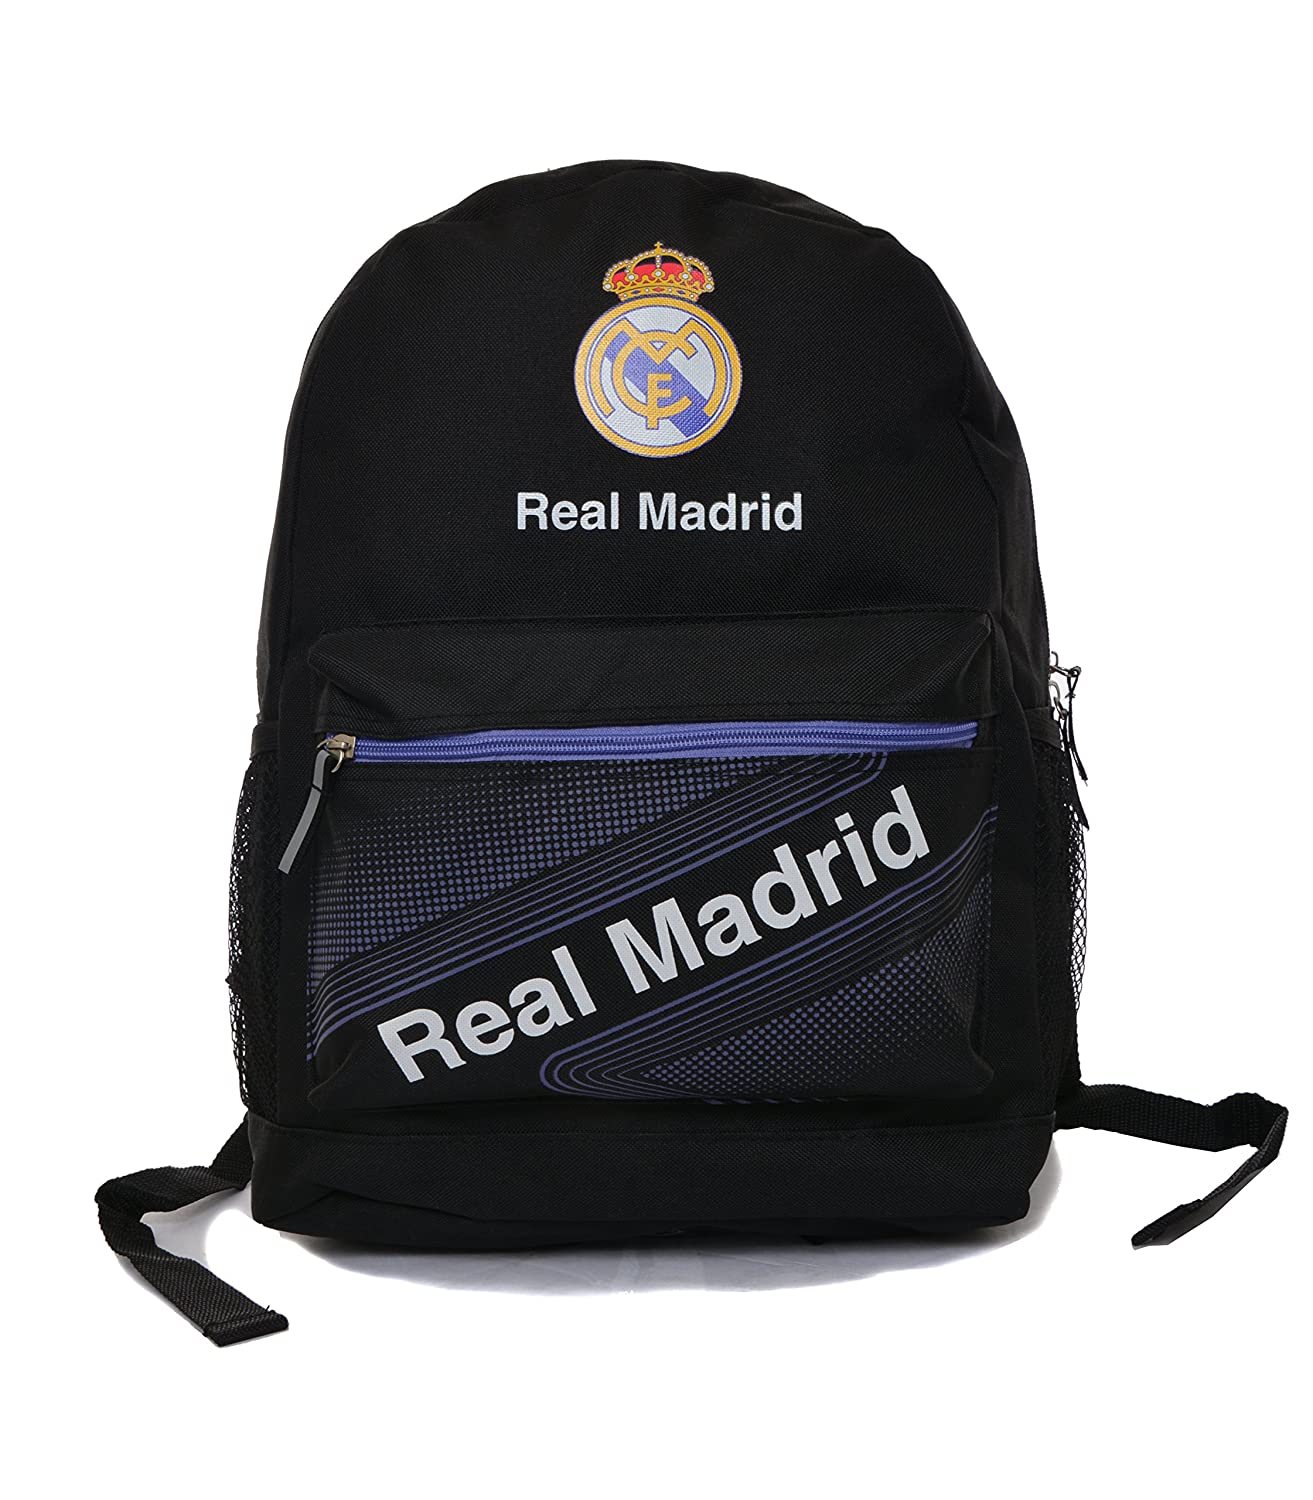 Amazon.com: Real Madrid Backpack School Mochila Bookbag Official Licensed Product: Computers & Accessories